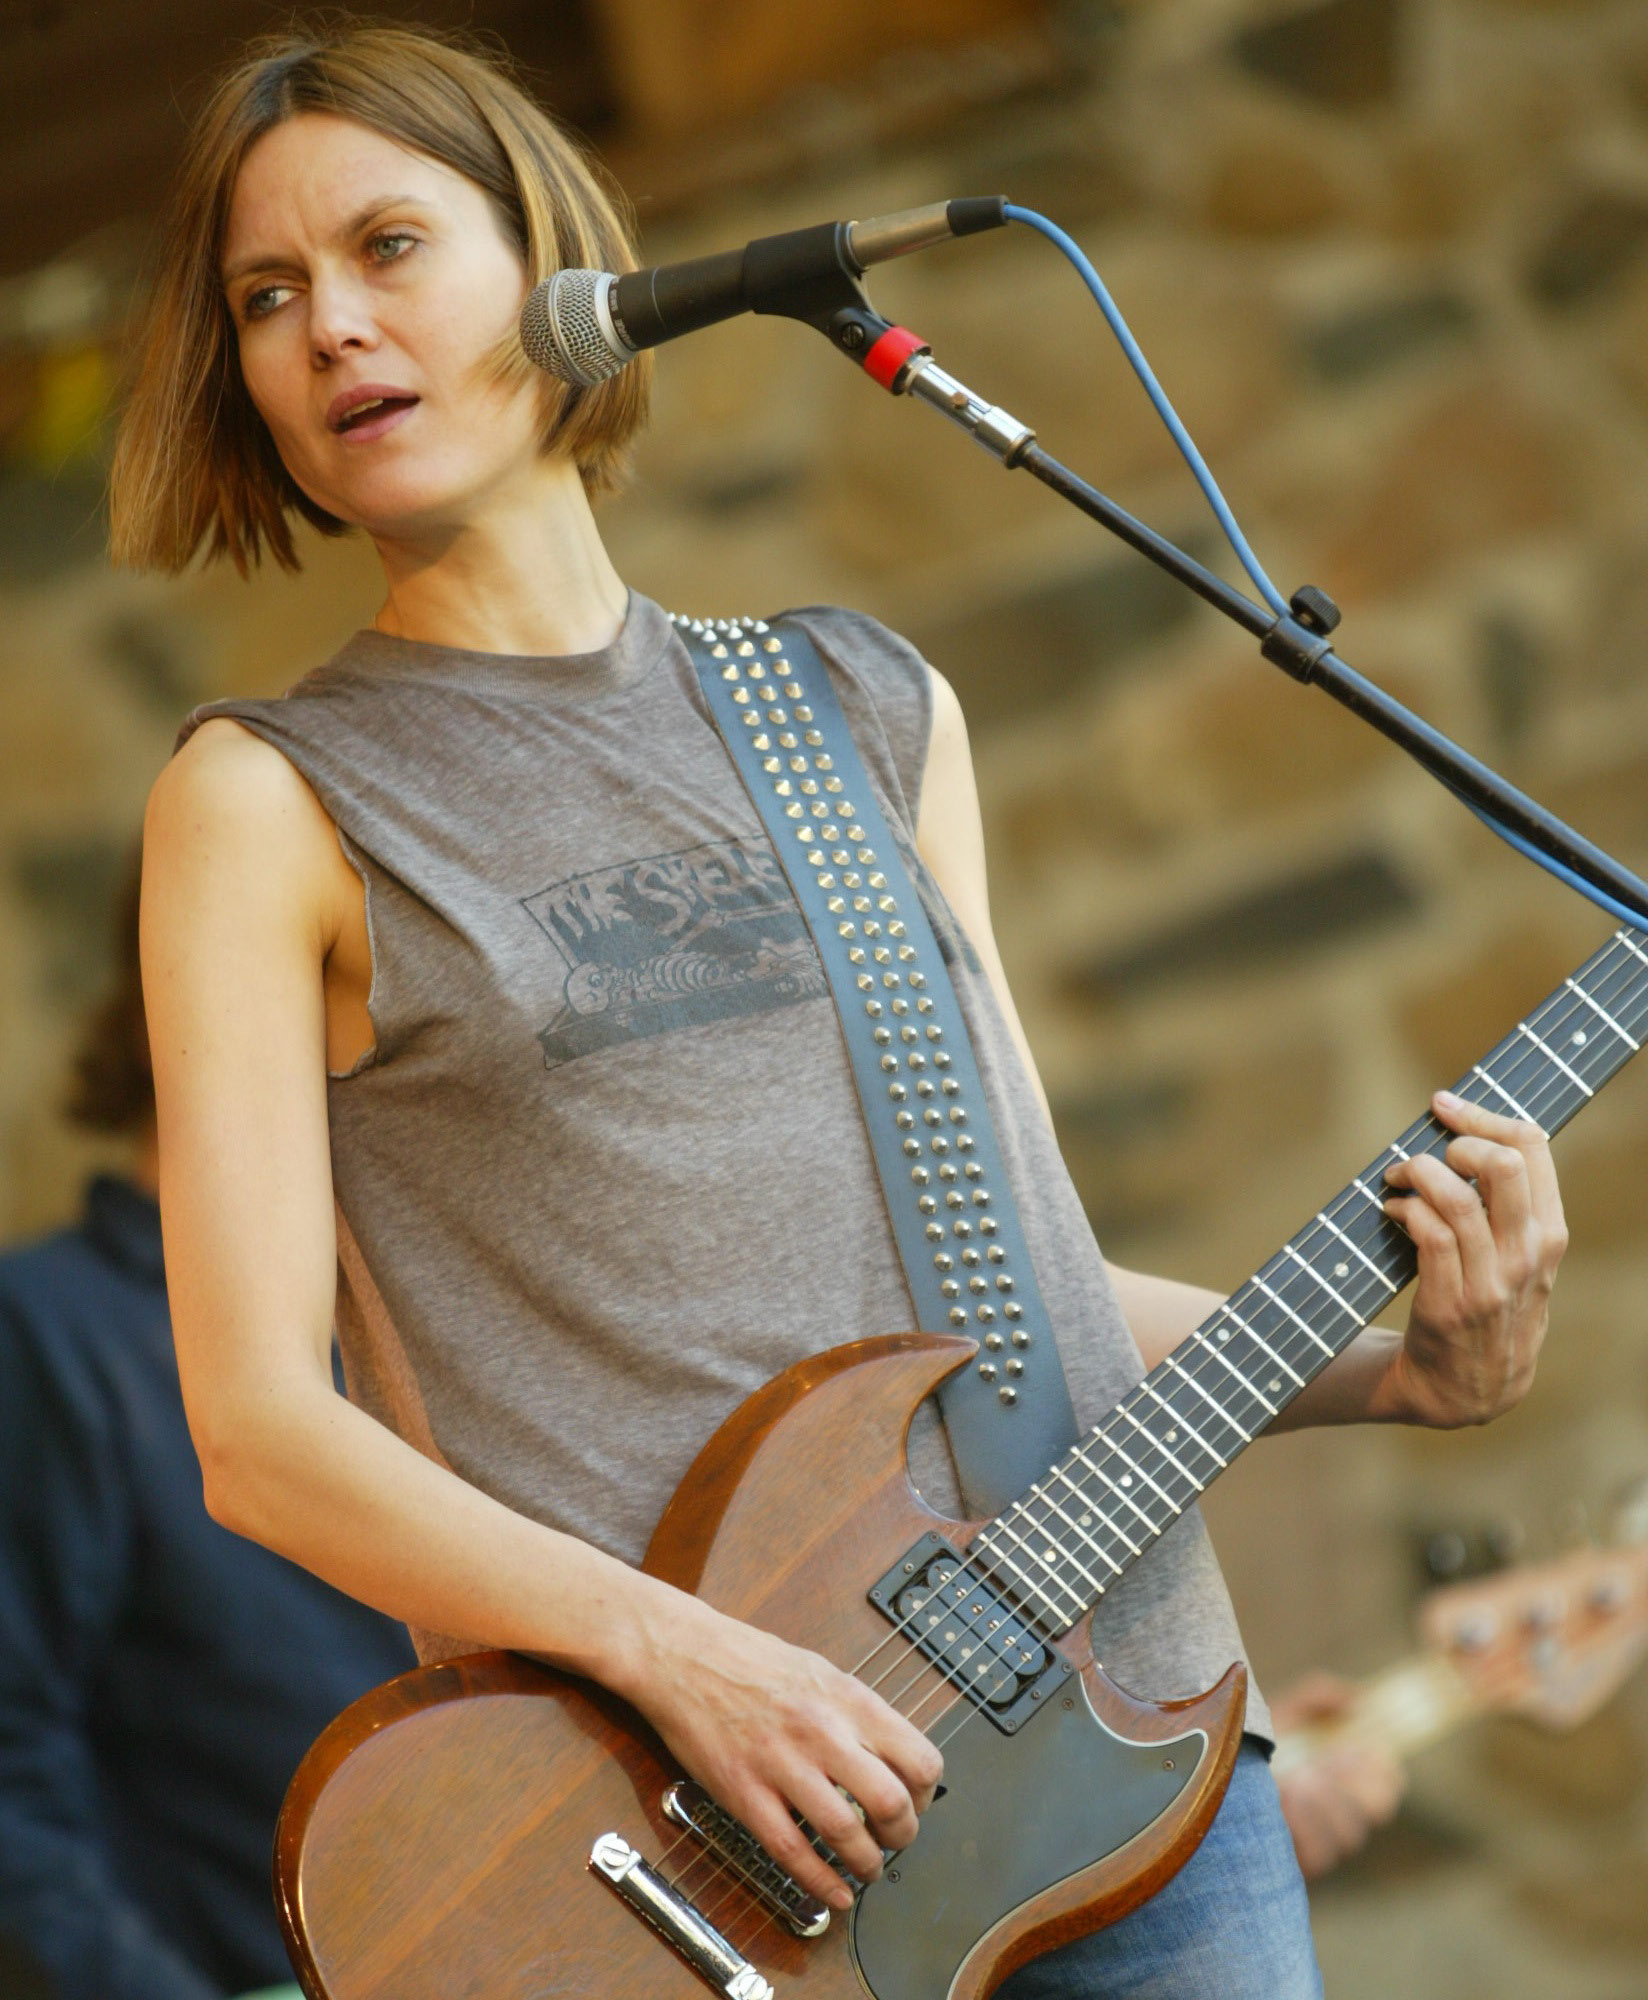 Artist Juliana Hatfield performs with her band at the Hubbard Park bandshell during the 2005 Daffodil Festival in Meriden Sunday afternoon May 1, 2005. (dave zajac photo)